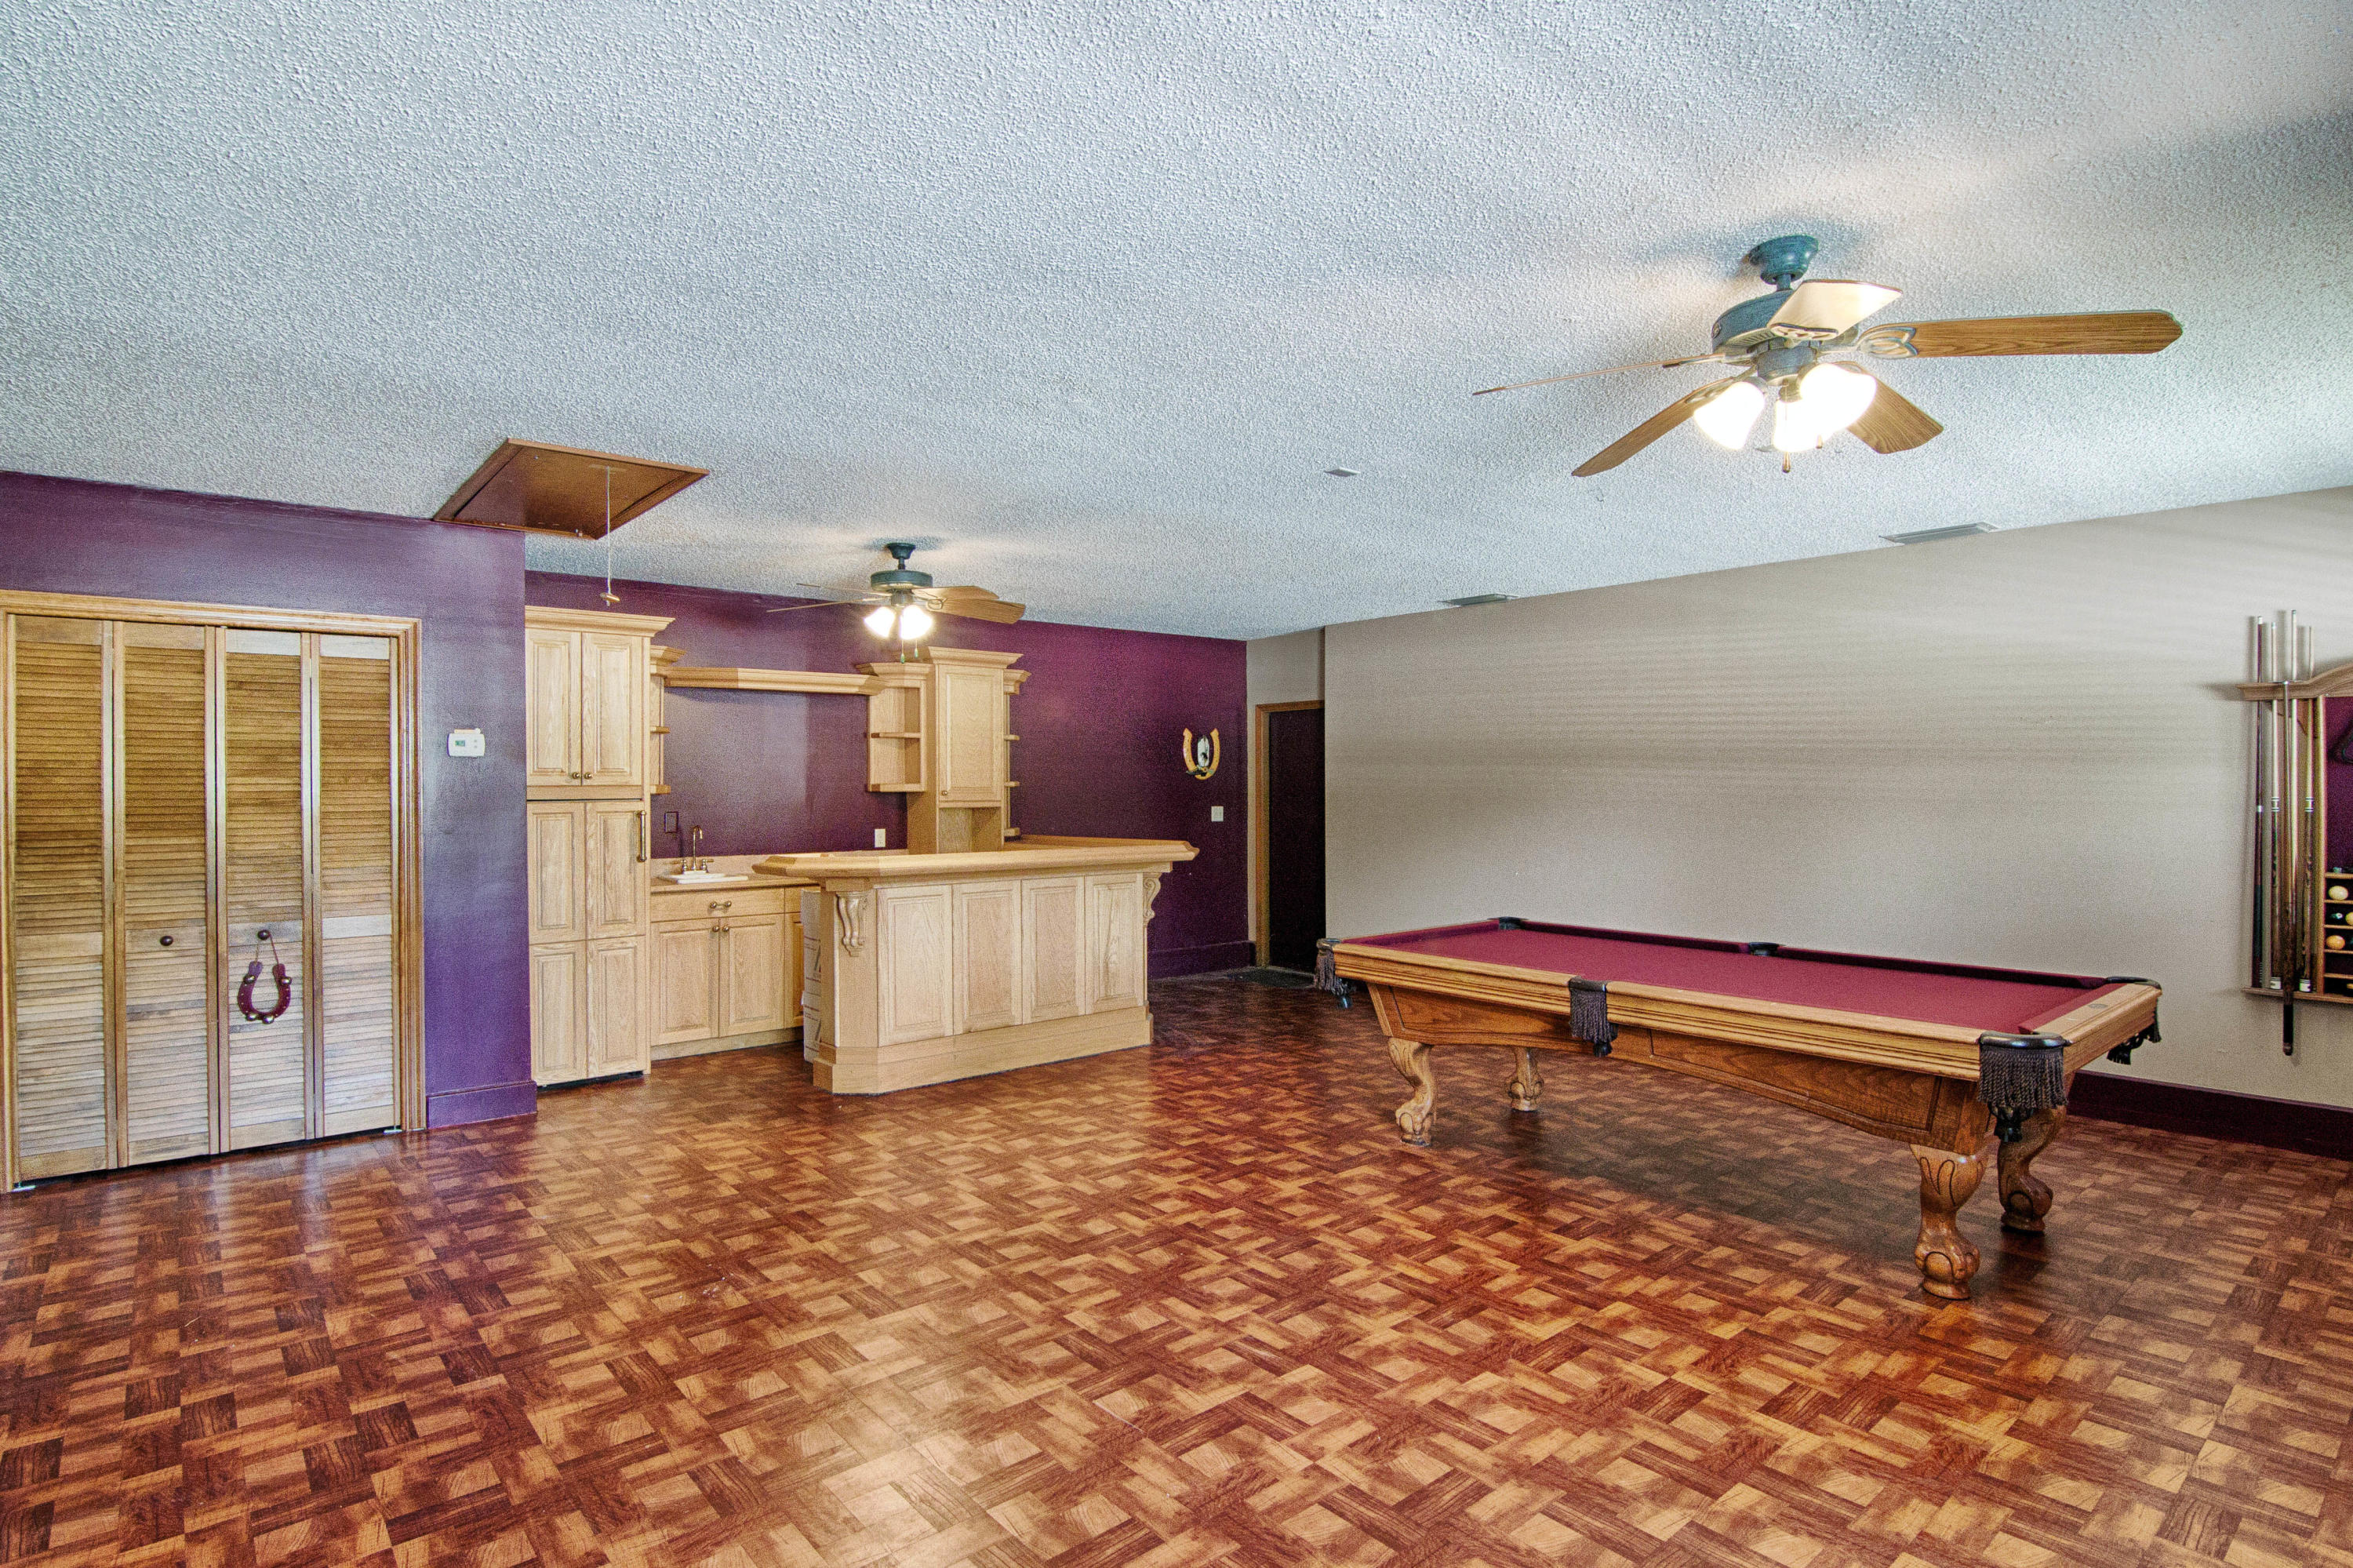 Large pool and wet bar area